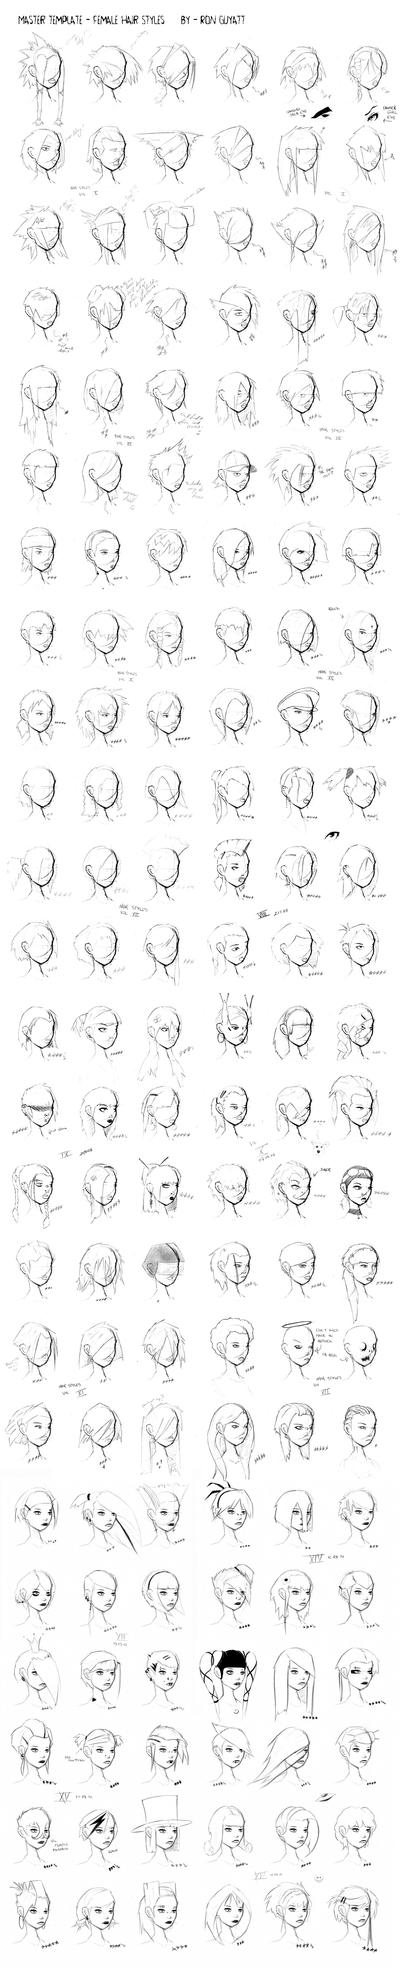 Hair Styles by FabledCreative